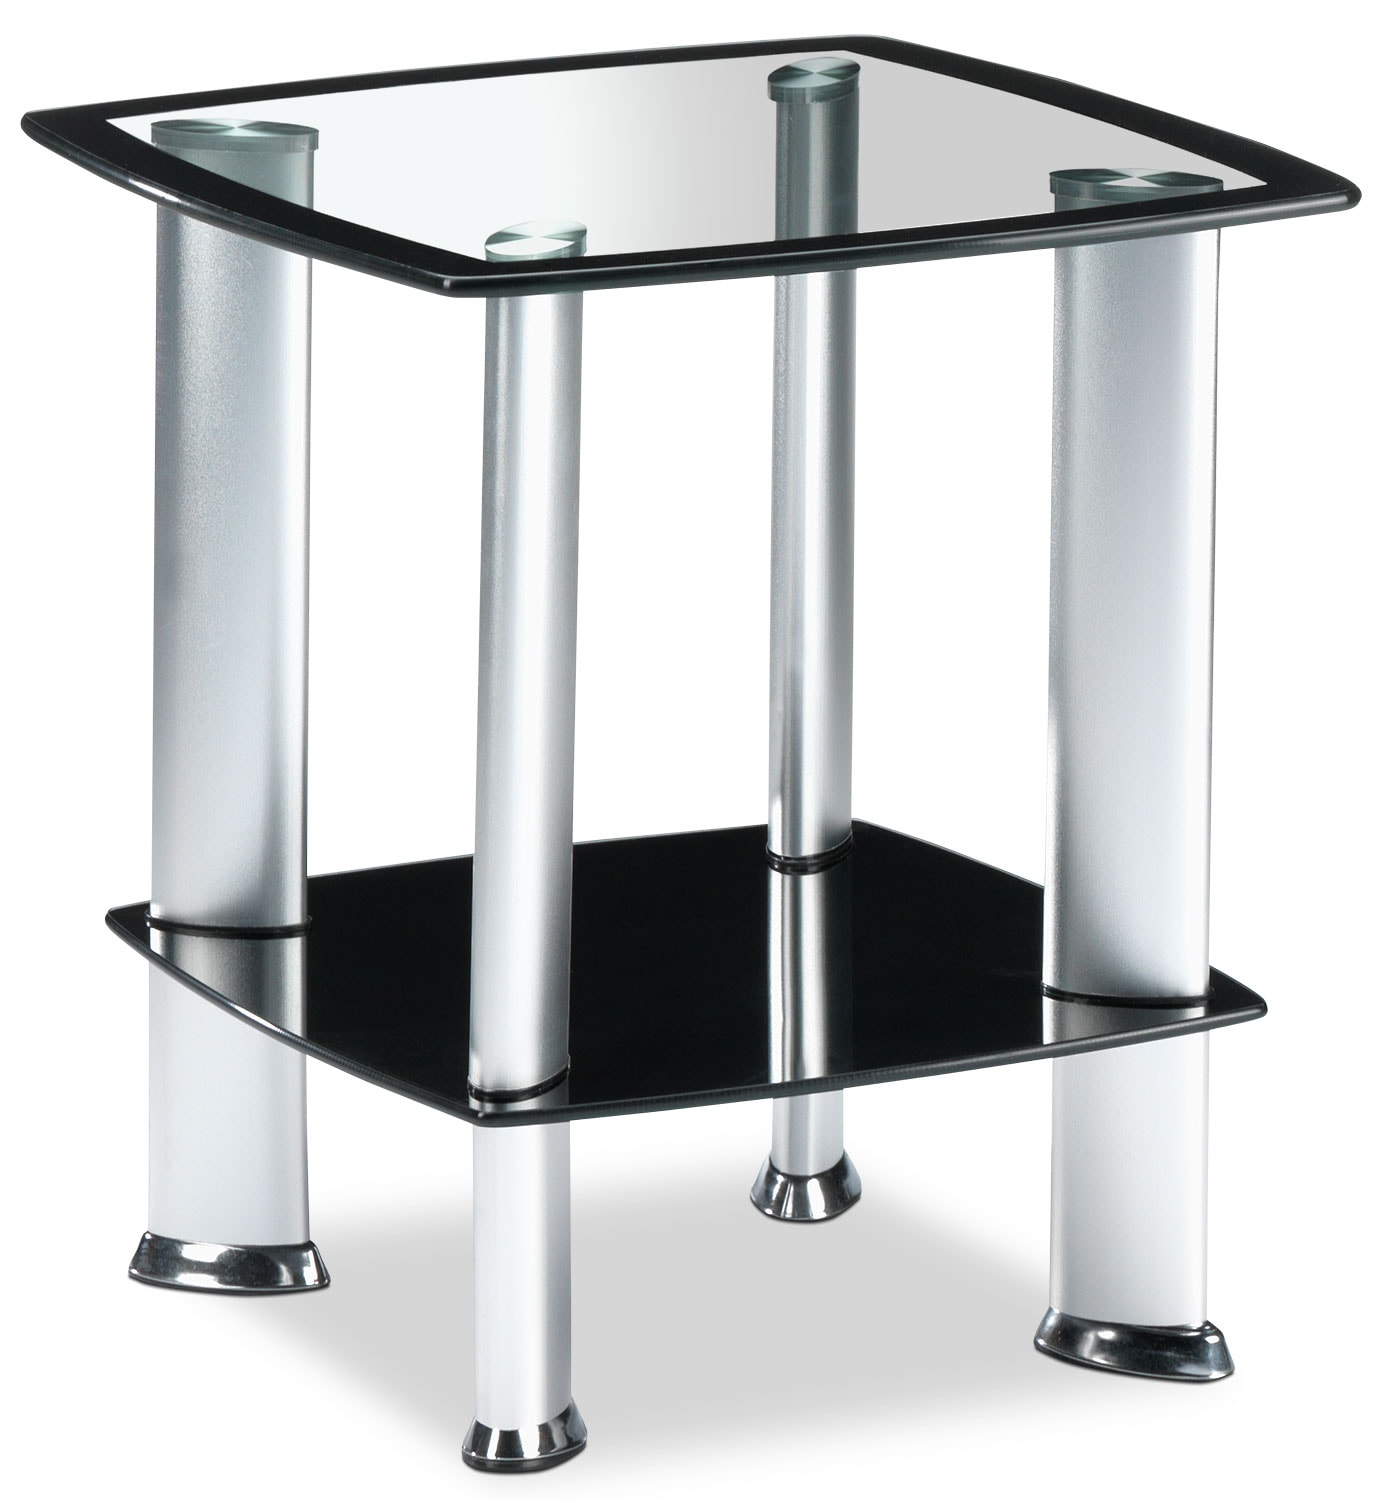 Coffee Table Sets Leons: Delta End Table - Silver And Black